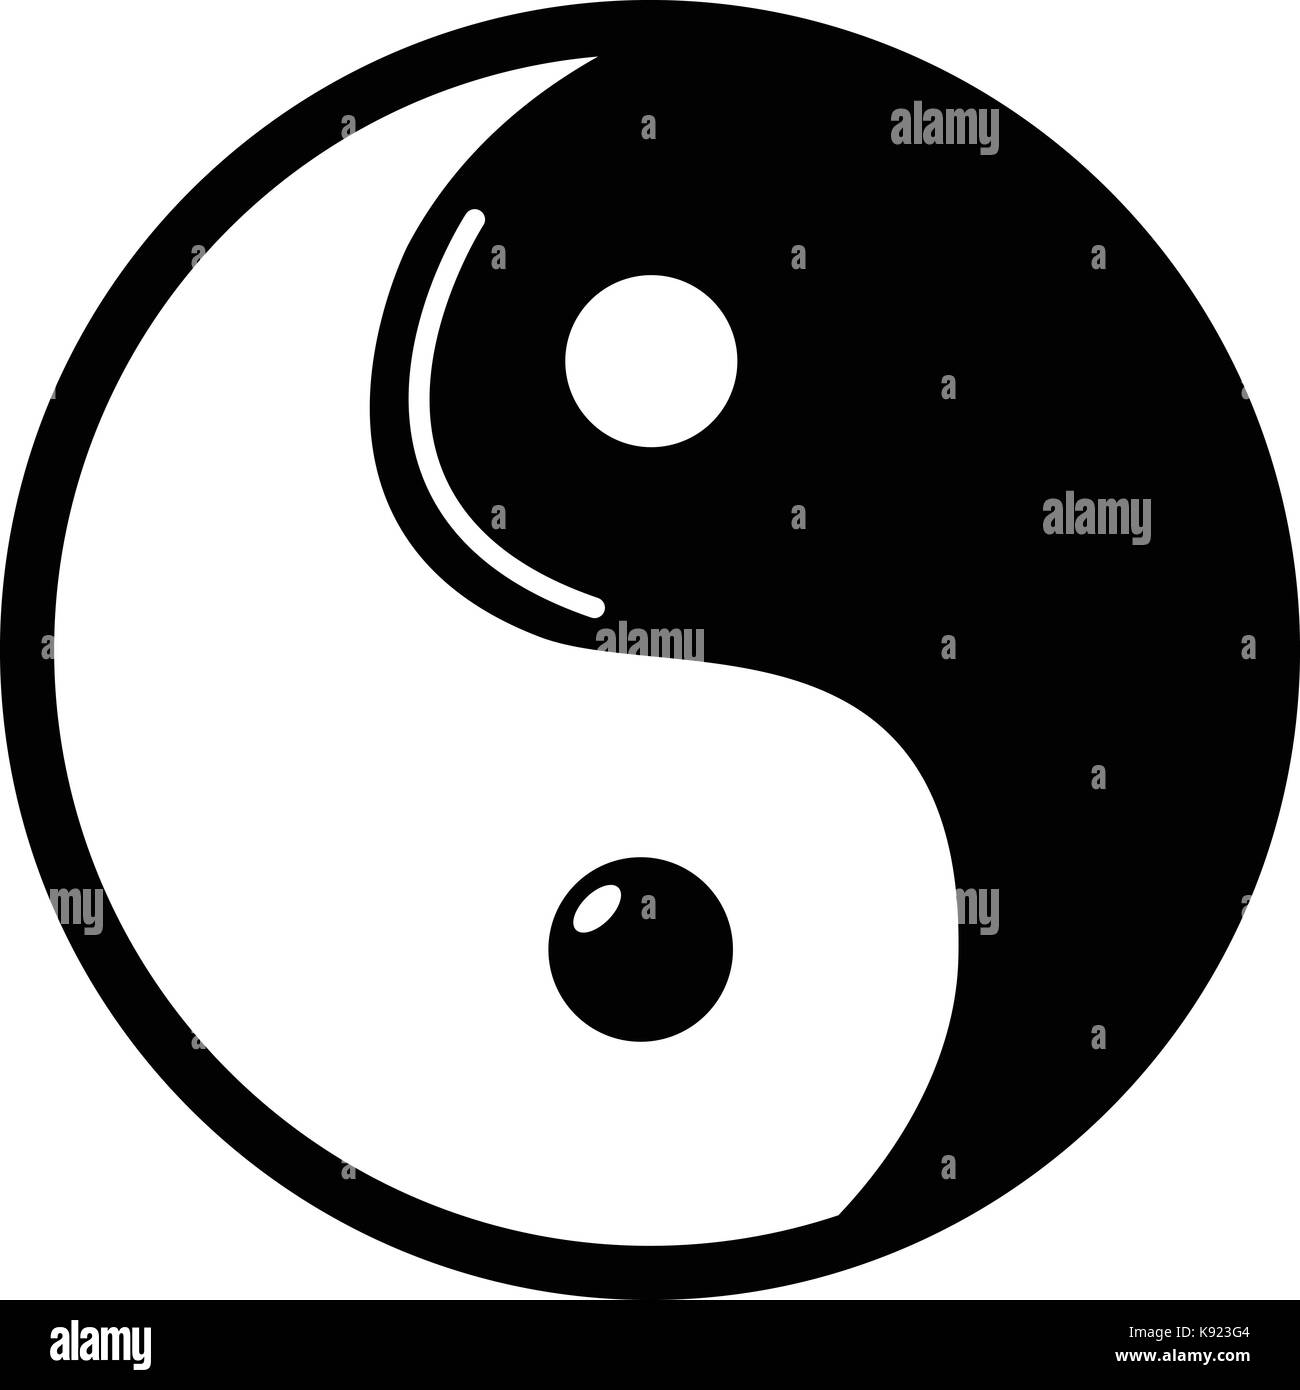 Yin yang symbol taoism icon simple style stock vector art yin yang symbol taoism icon simple style biocorpaavc